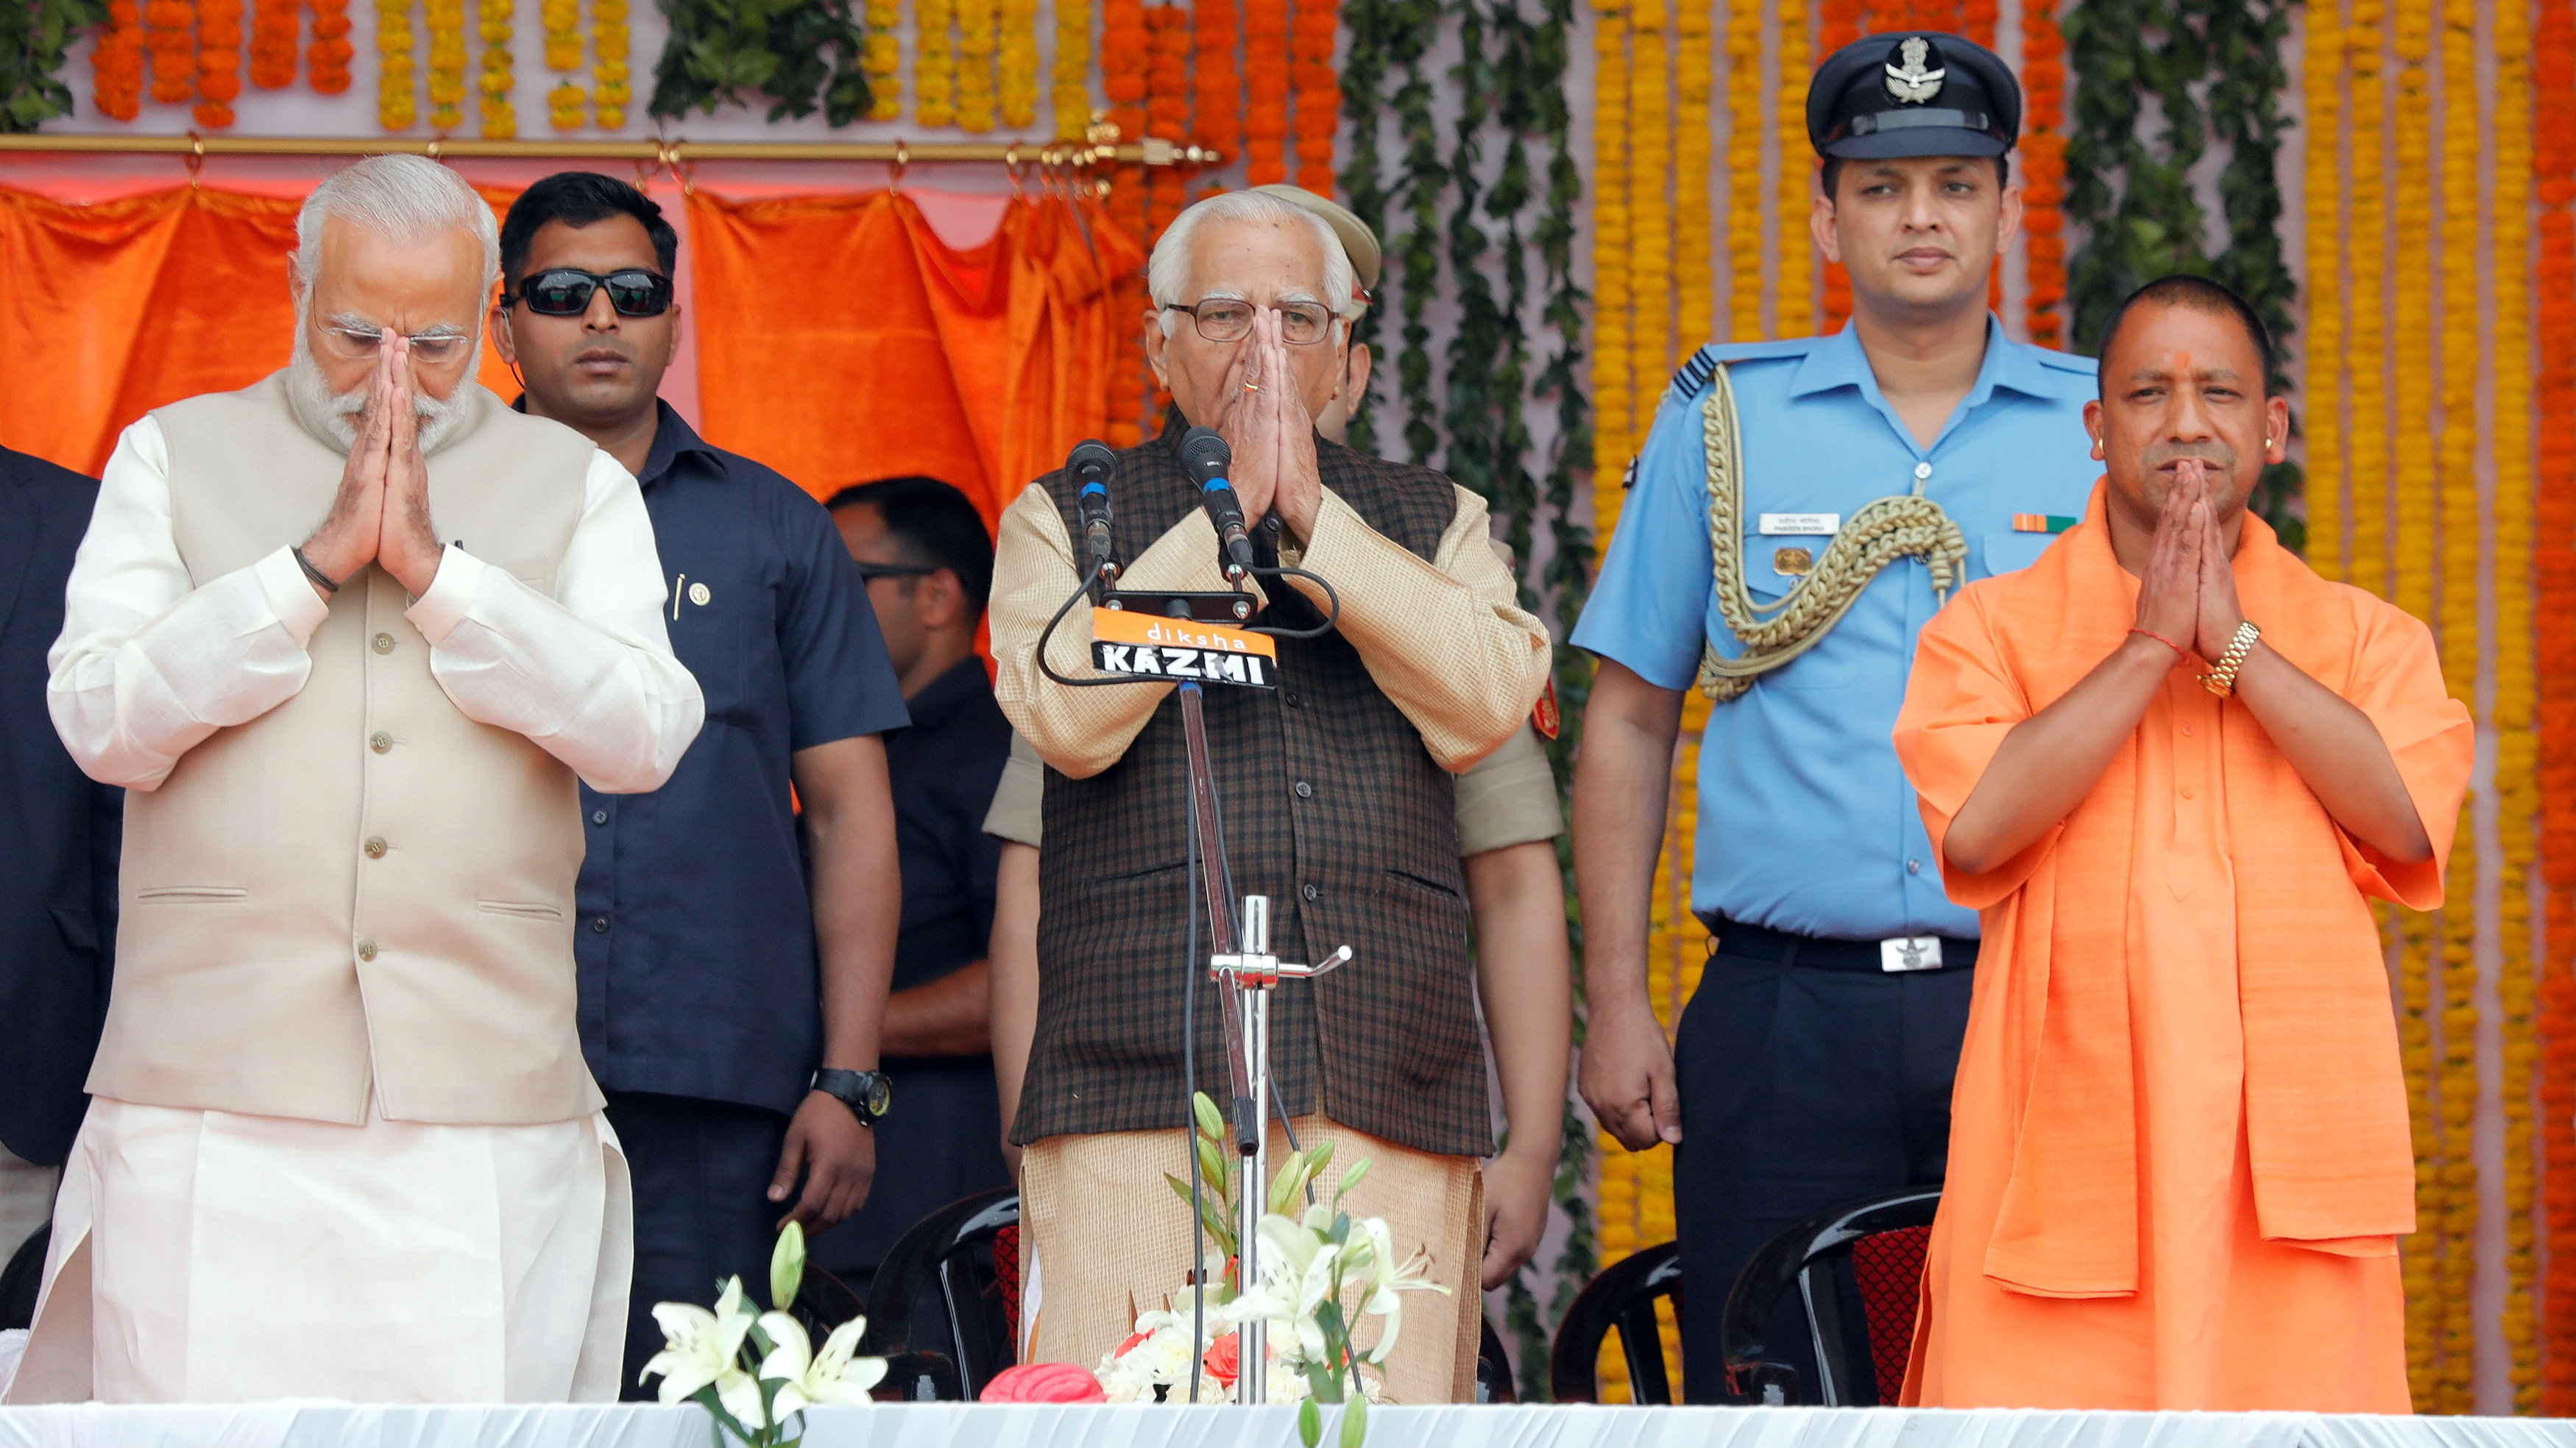 Prime Minister Narendra Modi (L), Uttar Pradesh governor Ram Naik (C) and India's ruling Bharatiya Janata Party (BJP) leader Yogi Adityanath (R) greet a gathering before Adityanath takes an oath as the new Chief Minister of India's most populous state of Uttar Pradesh during a swearing-in ceremony in Lucknow, India, March 19, 2017.